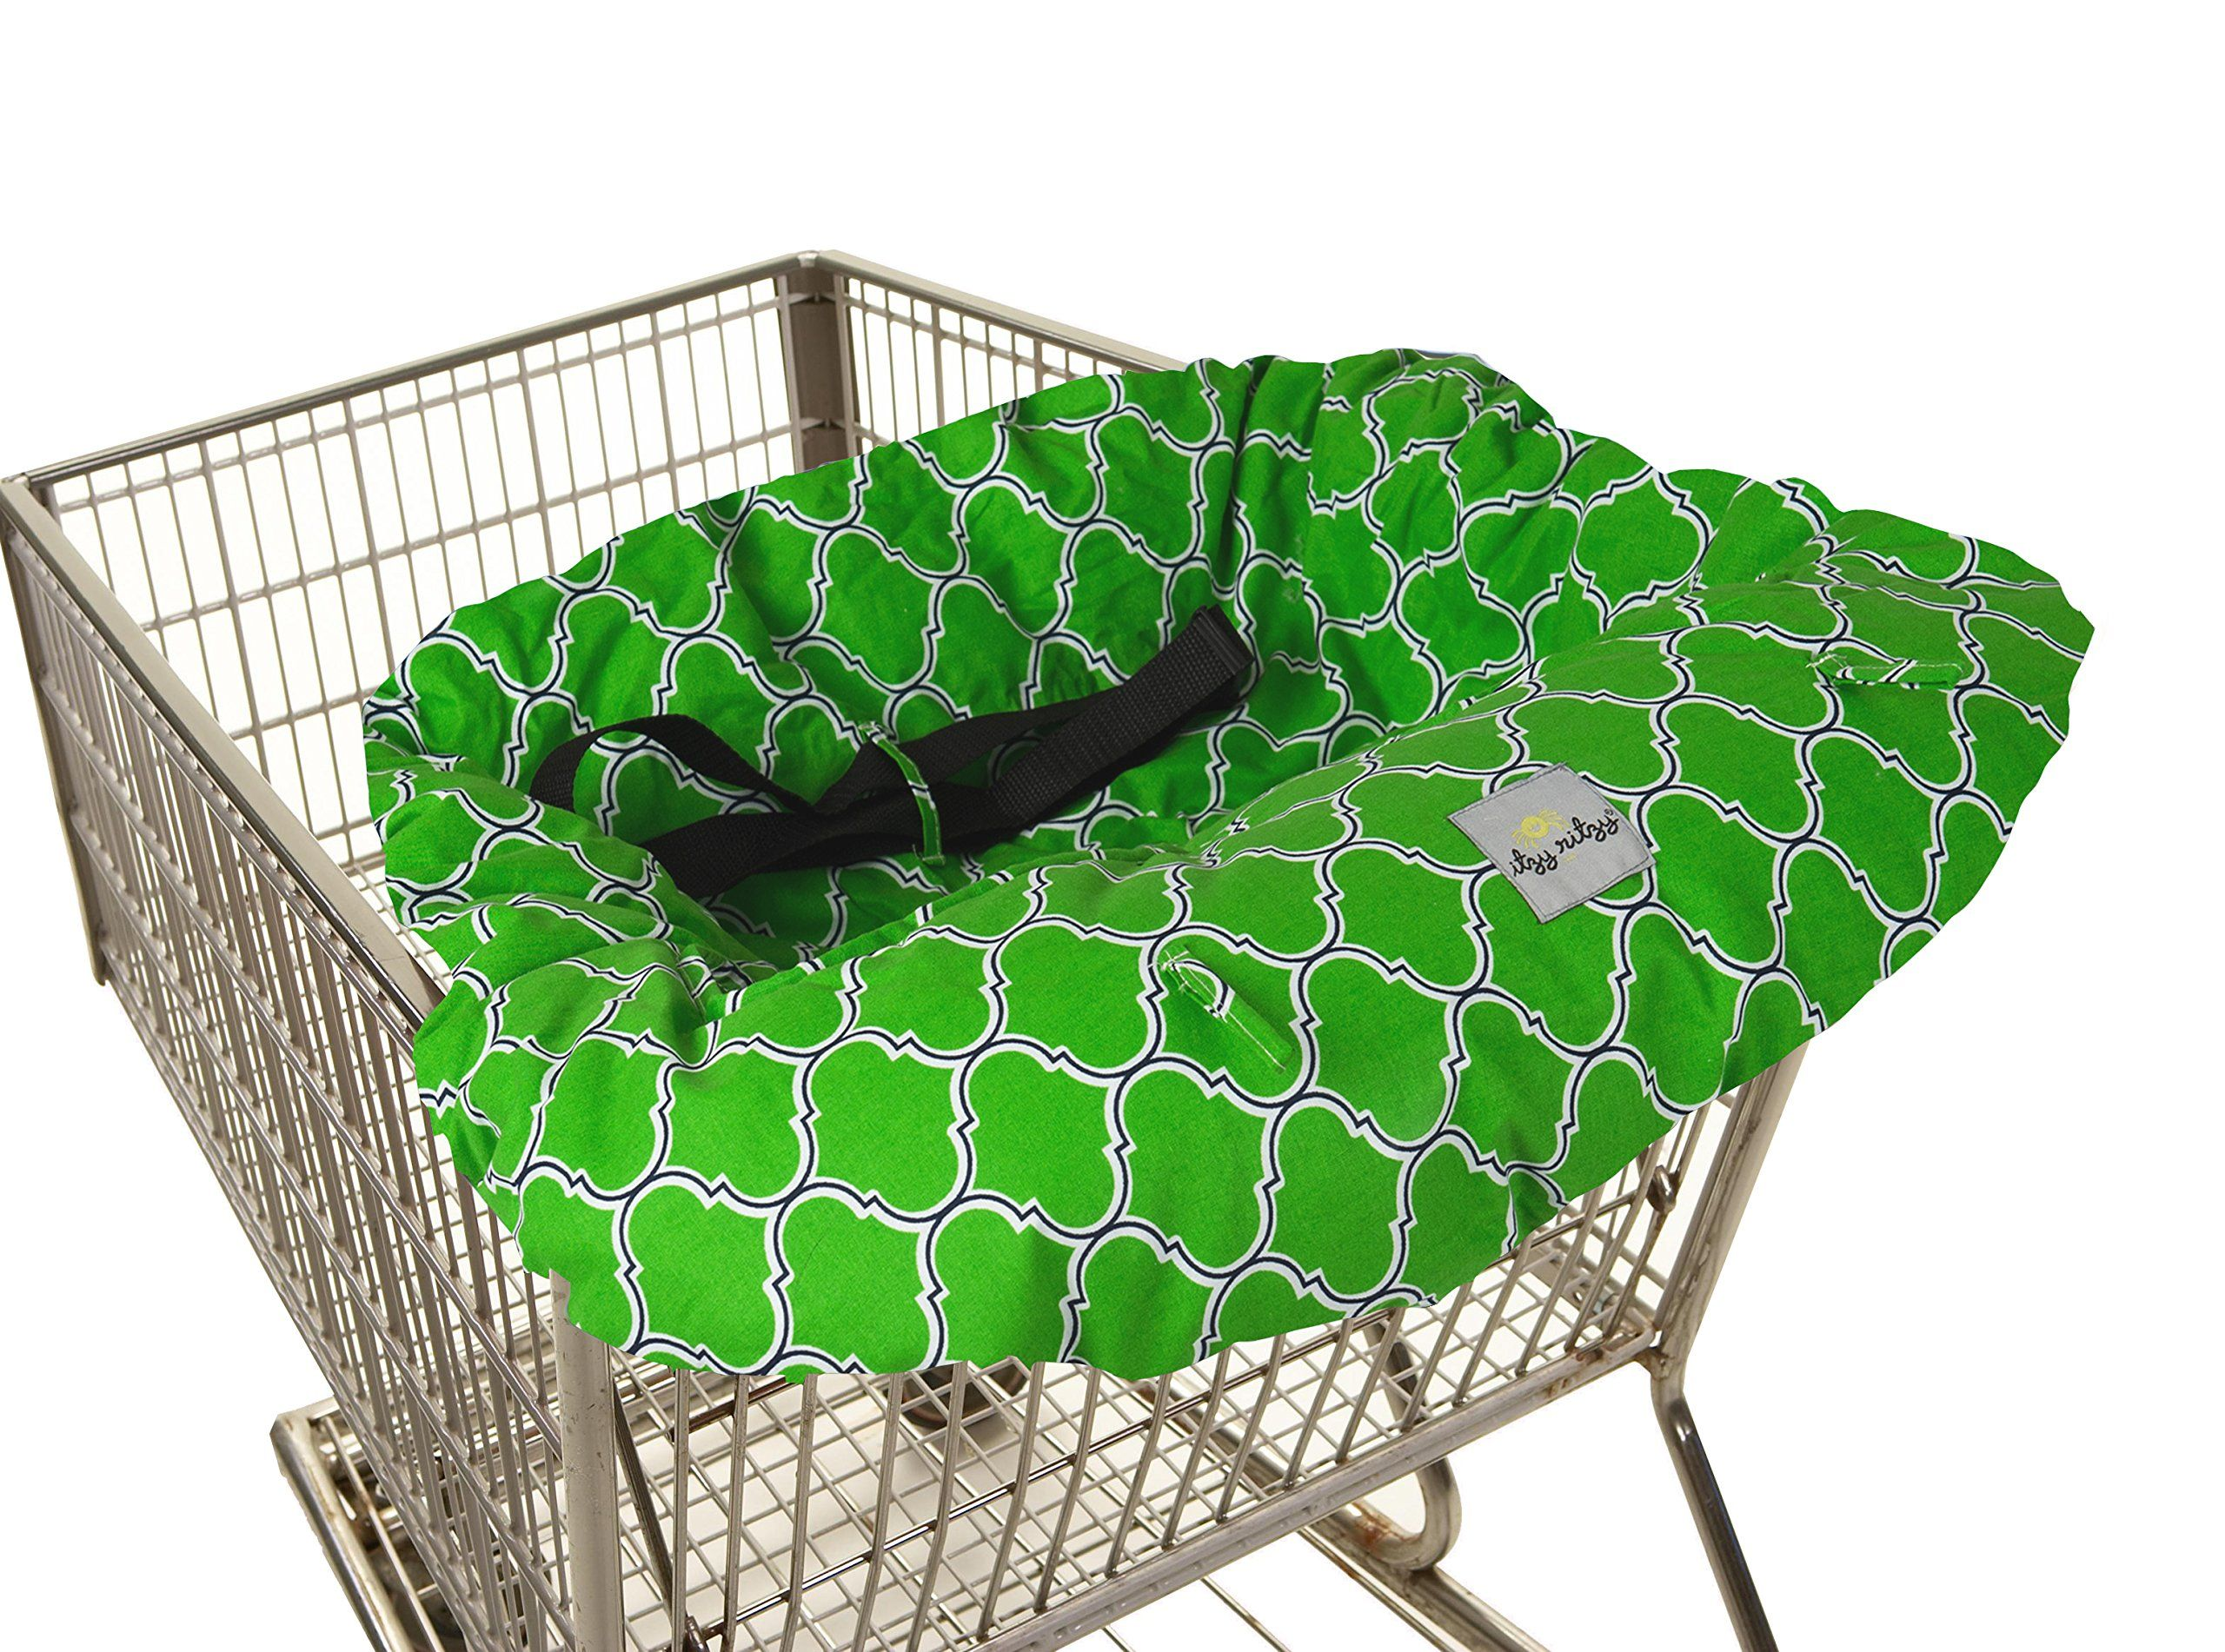 af911fd4d0dd Itzy Ritzy Sitzy Shopping Cart and High Chair Cover